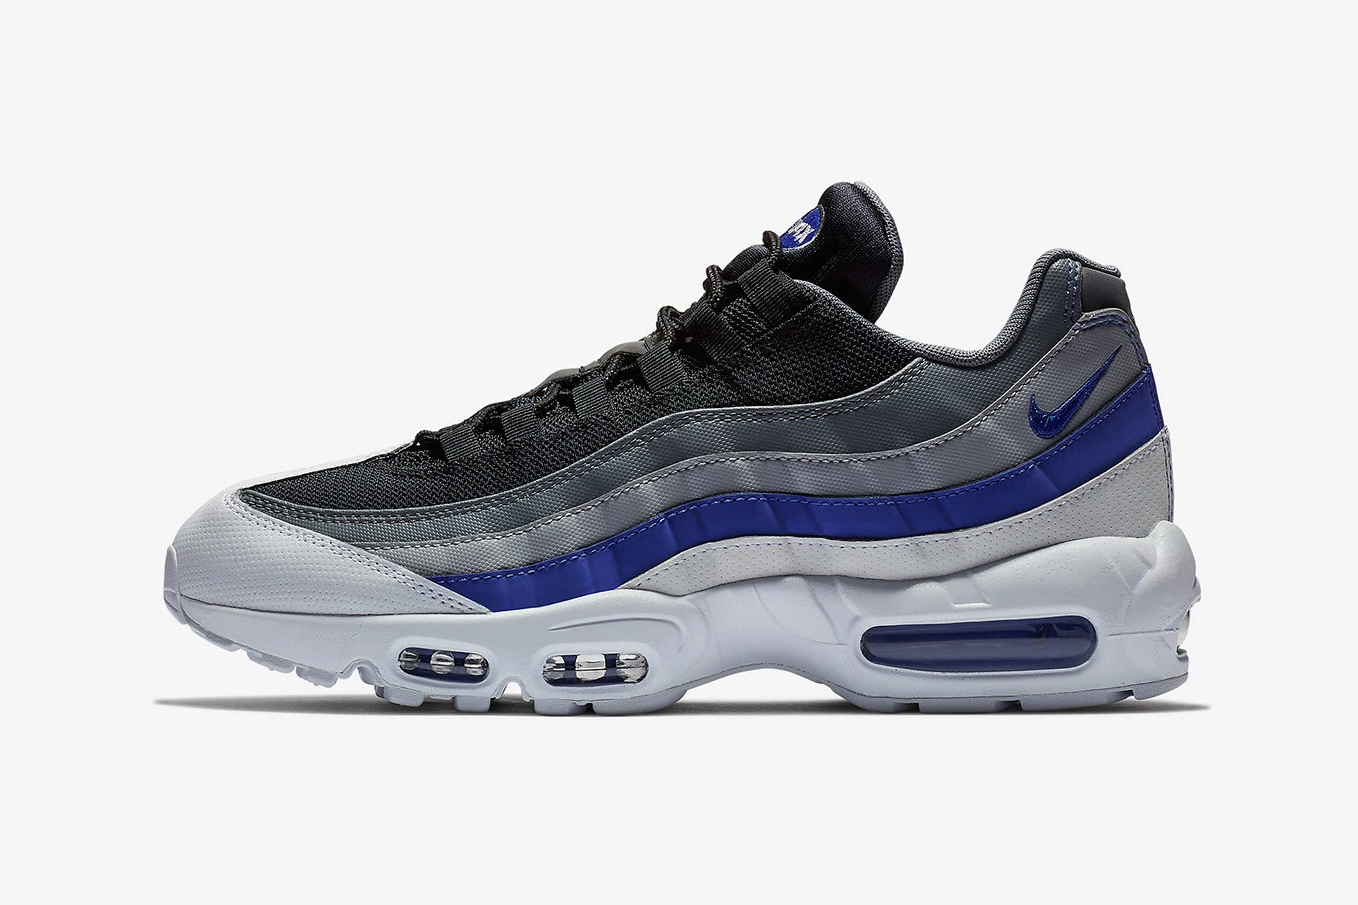 competitive price bfd1b 341ef Nike Air Max 95 Colorway Reminds Us of the STASH Collaboration